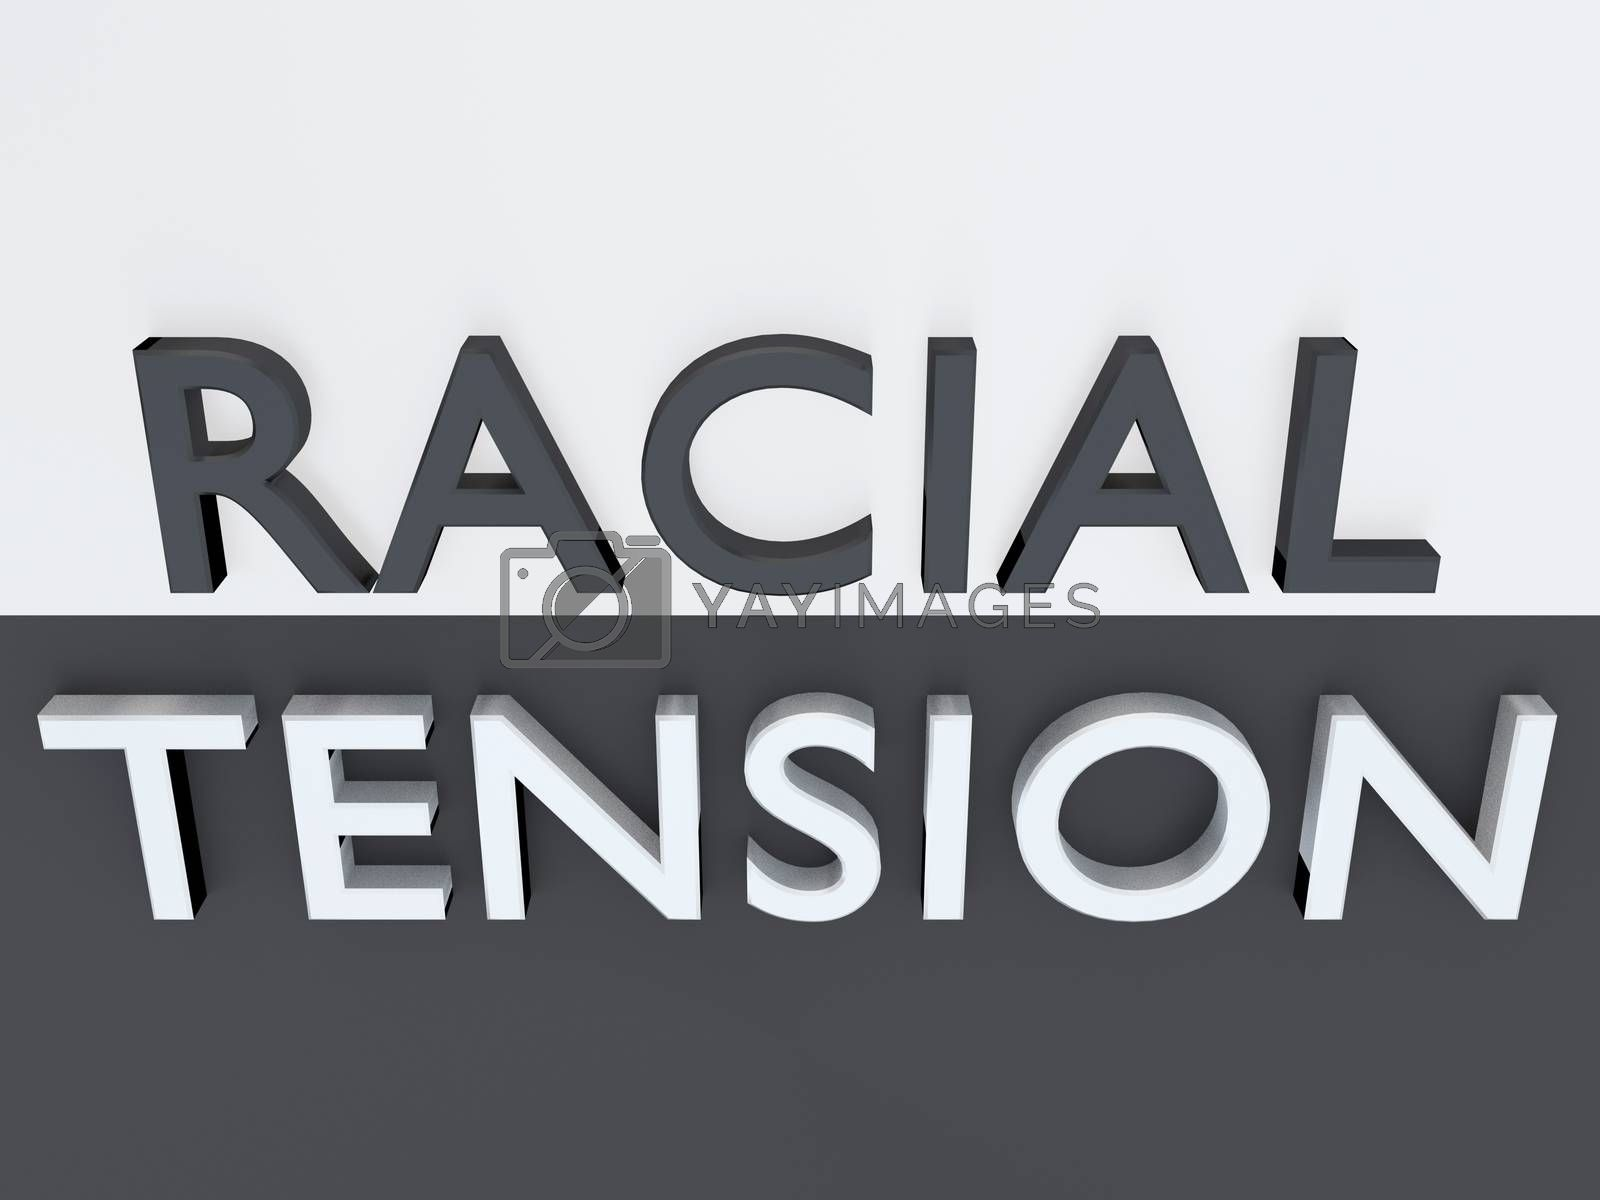 3D illustration of black and white letters forming the words RACIAL TENSION above a plate, split into two parts with the oposit colors.